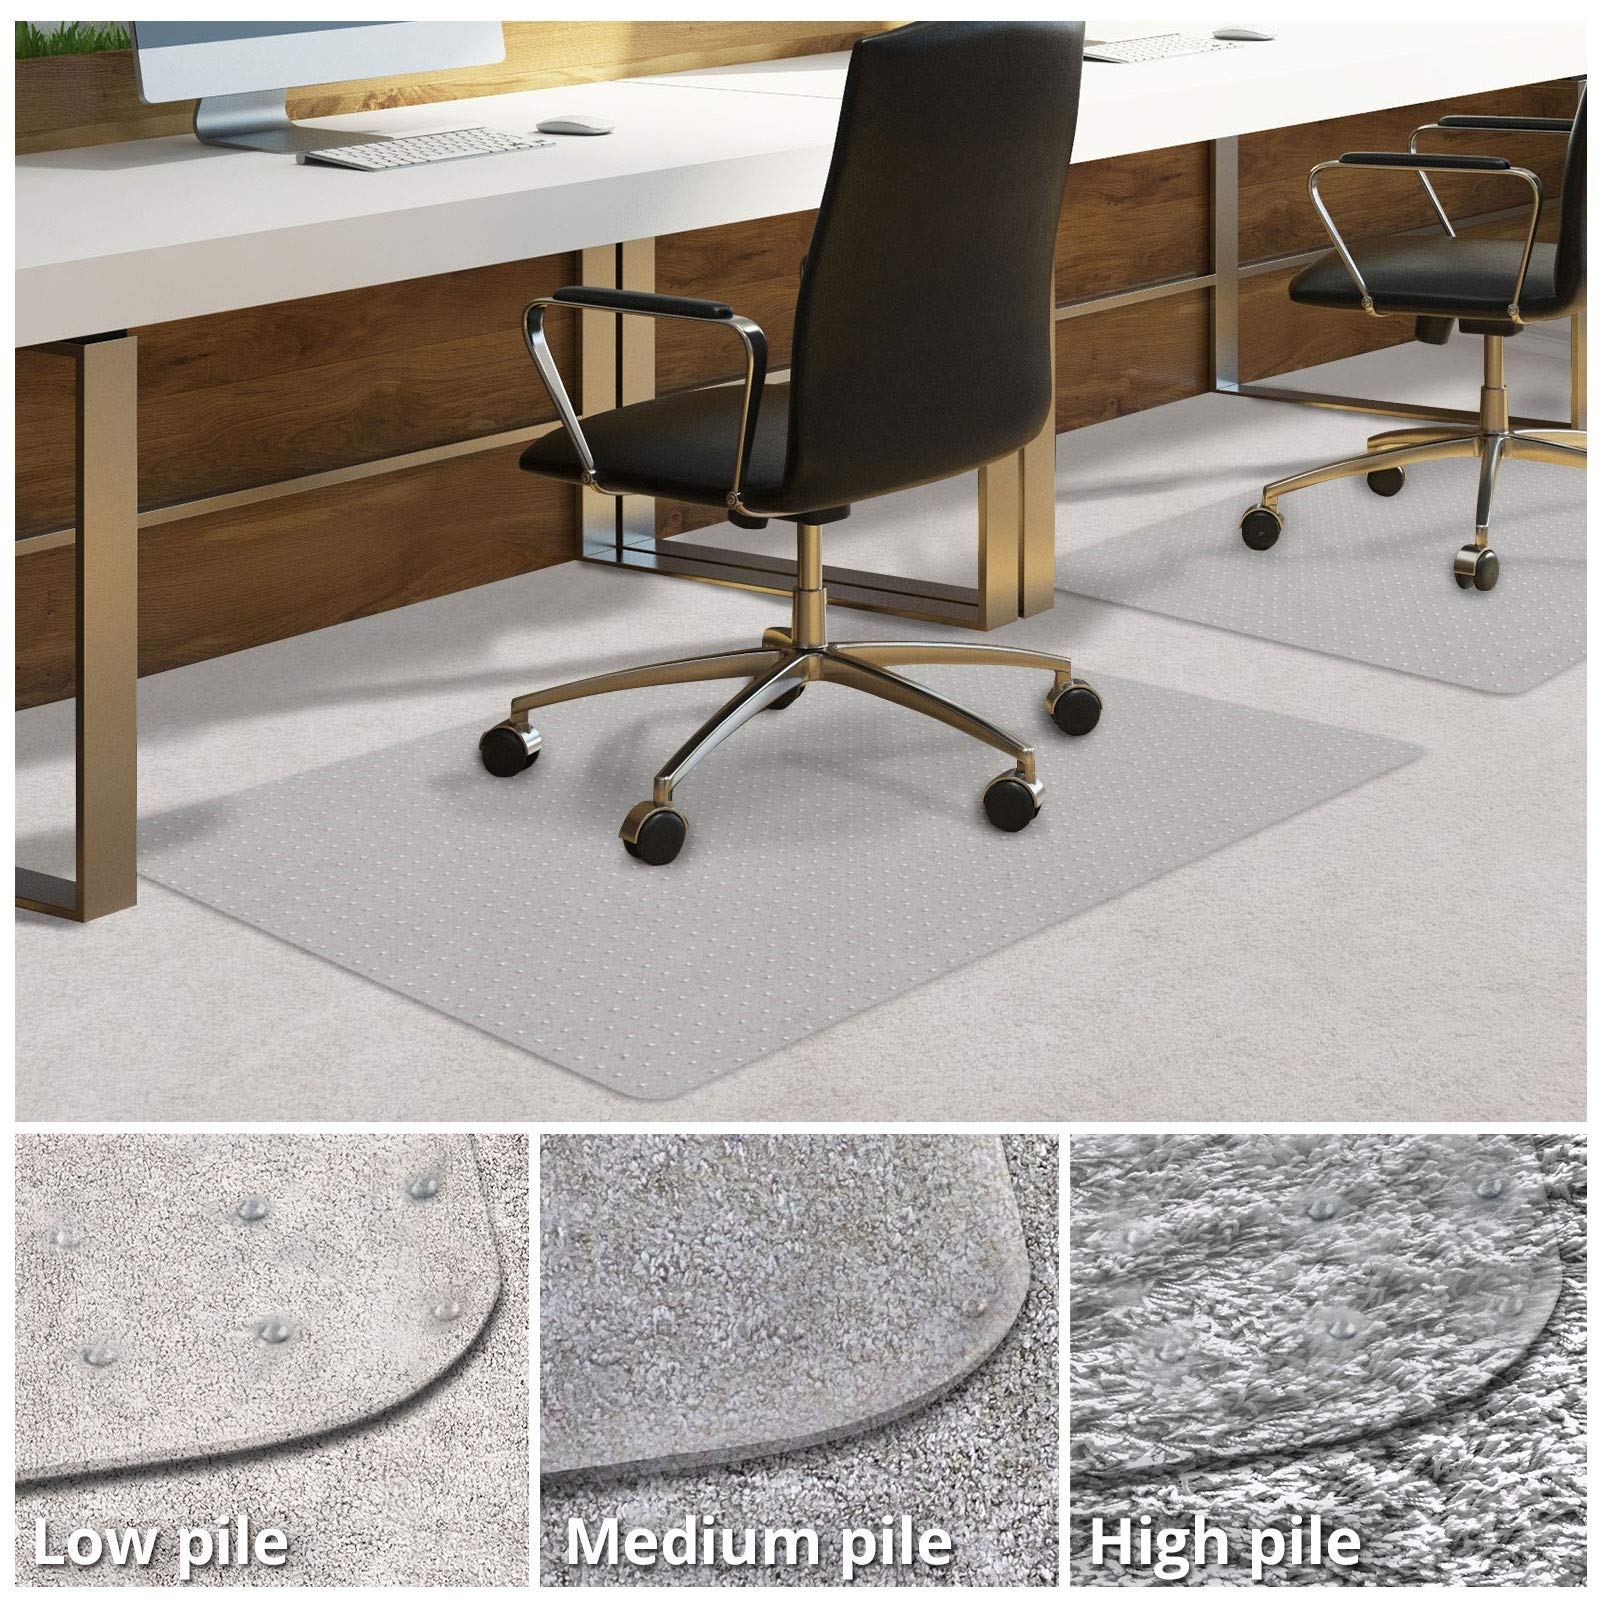 Office Chair Mat for Carpeted Floors | Desk Chair Mat for Carpet | Clear PVC Mat in Different Thicknesses and Sizes for Every Pile Type | Low-Pile 30''x48'' by OfficeMarshal